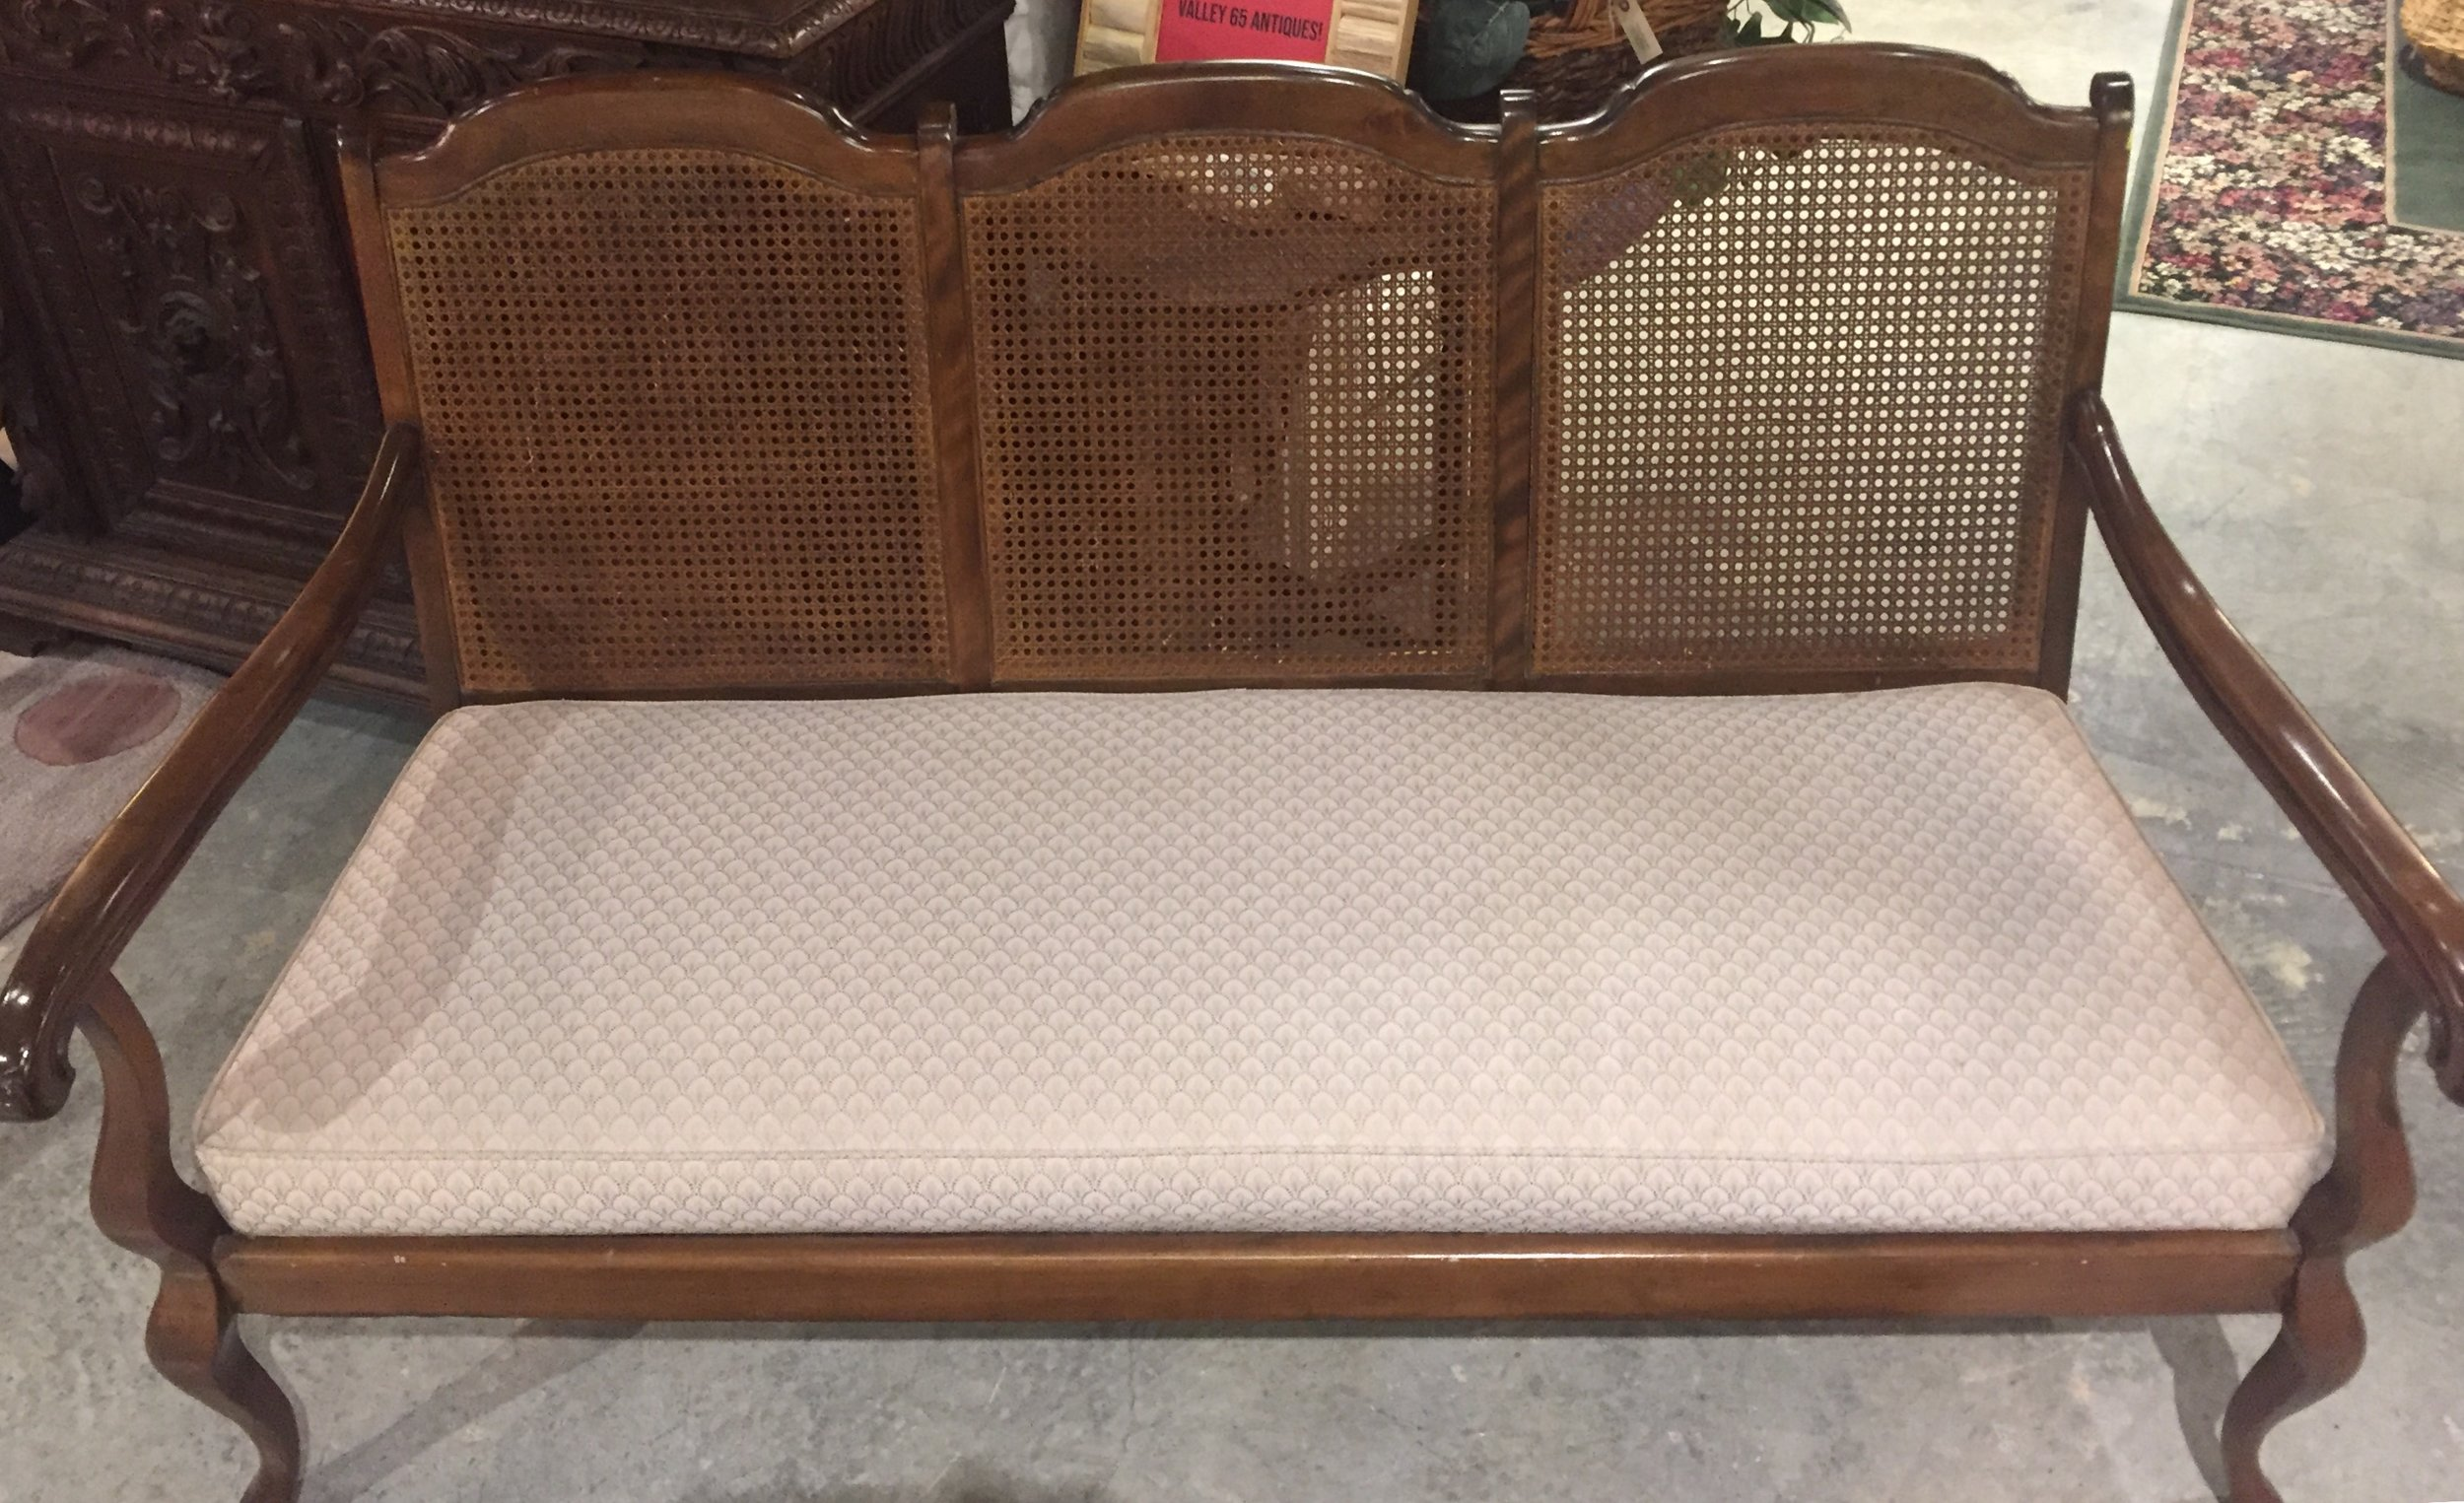 Cane Back Settee $274.95 - C1080 24417